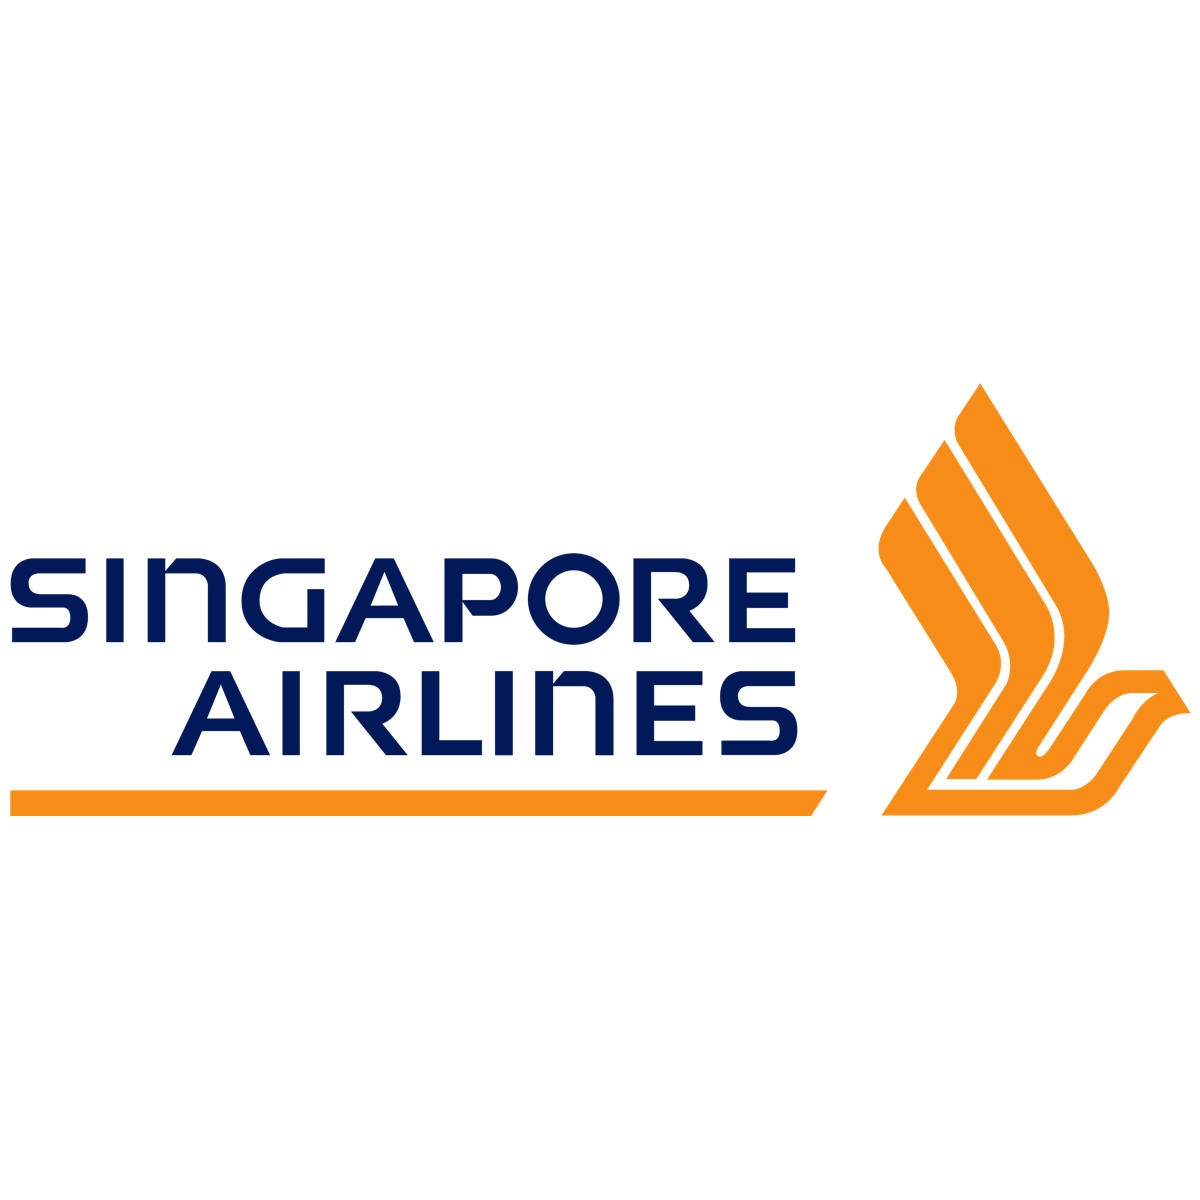 Singapore Airlines - CIMB Research 2017-11-08: Favourable Cyclical Winds Lift SIA Group Earnings